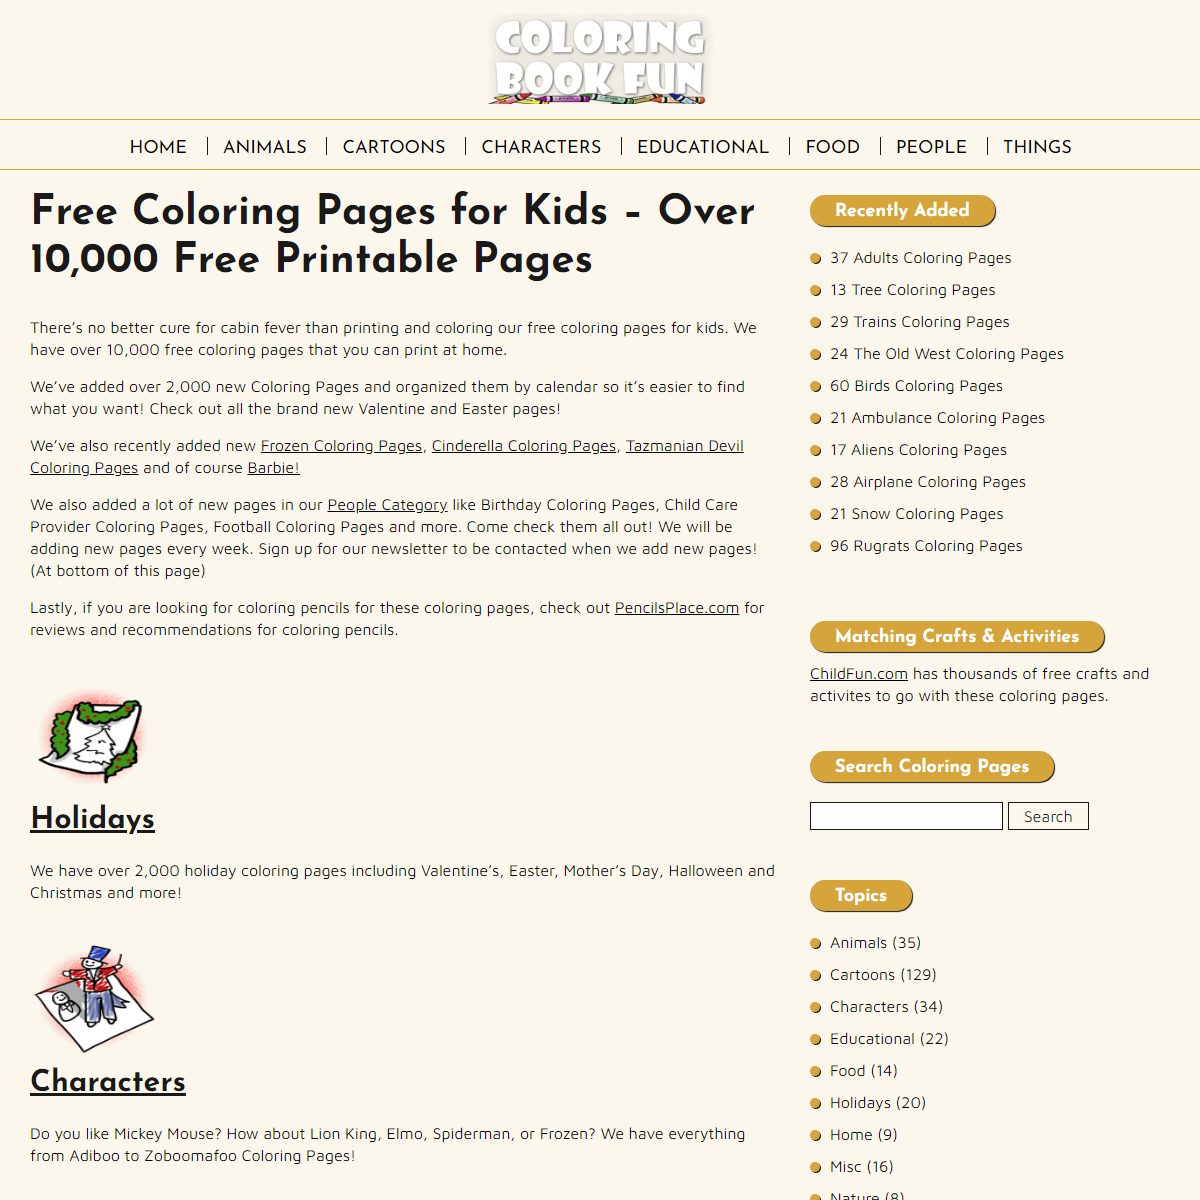 Free Coloring Pages for Kids - Over 10,000 Free Printable Pages - ColoringBookFun